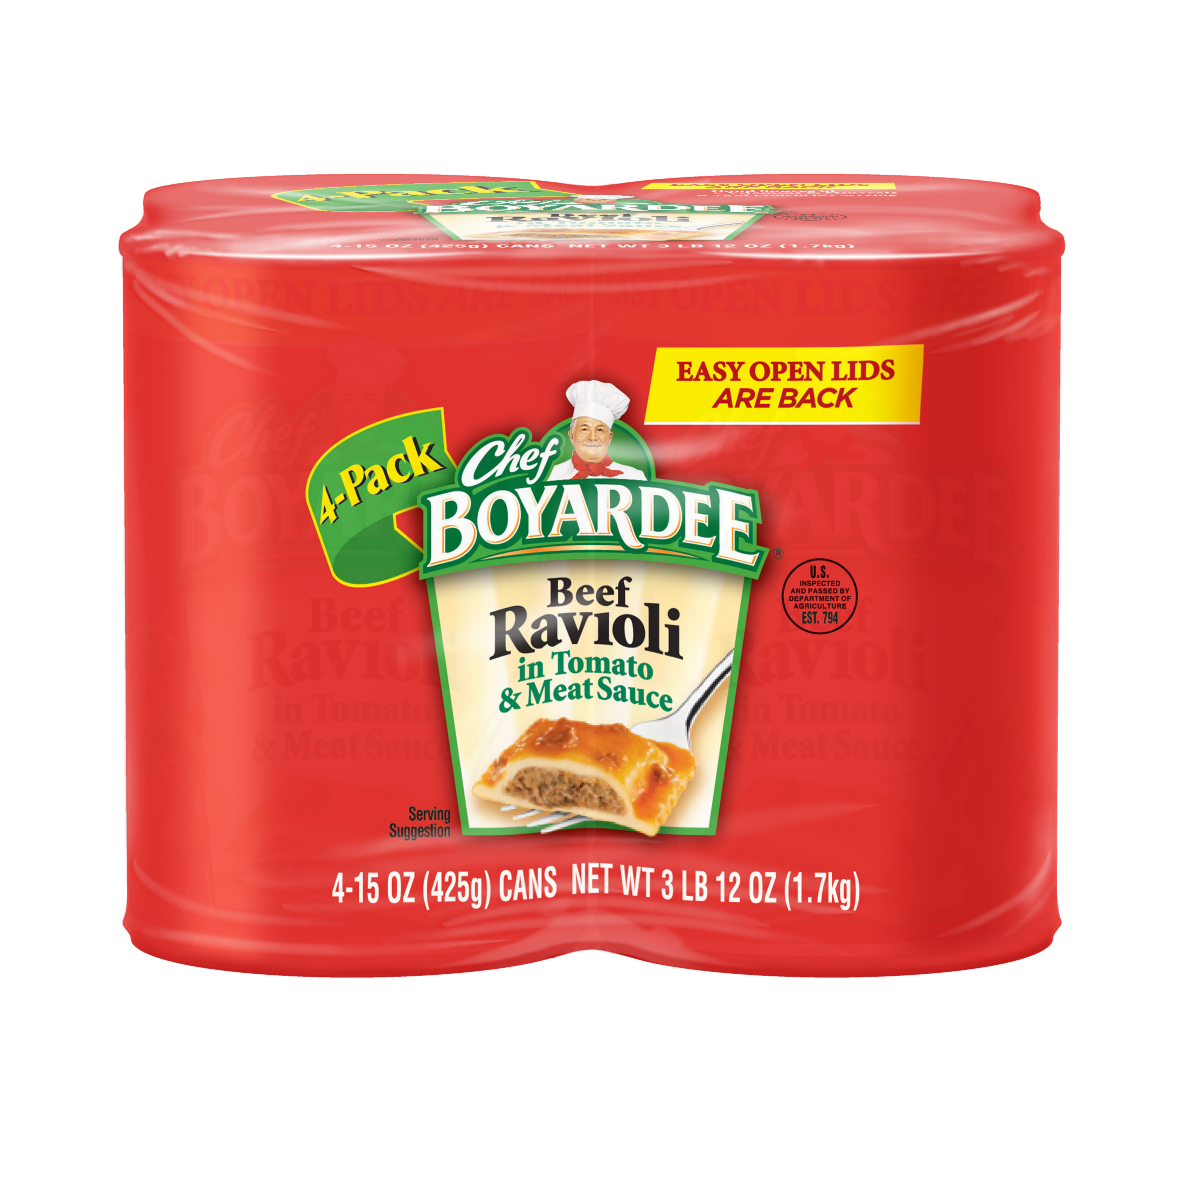 Chef Boyardee In Tomato & Meat Sauce 15 Oz Beef Ravioli, 4 Ct